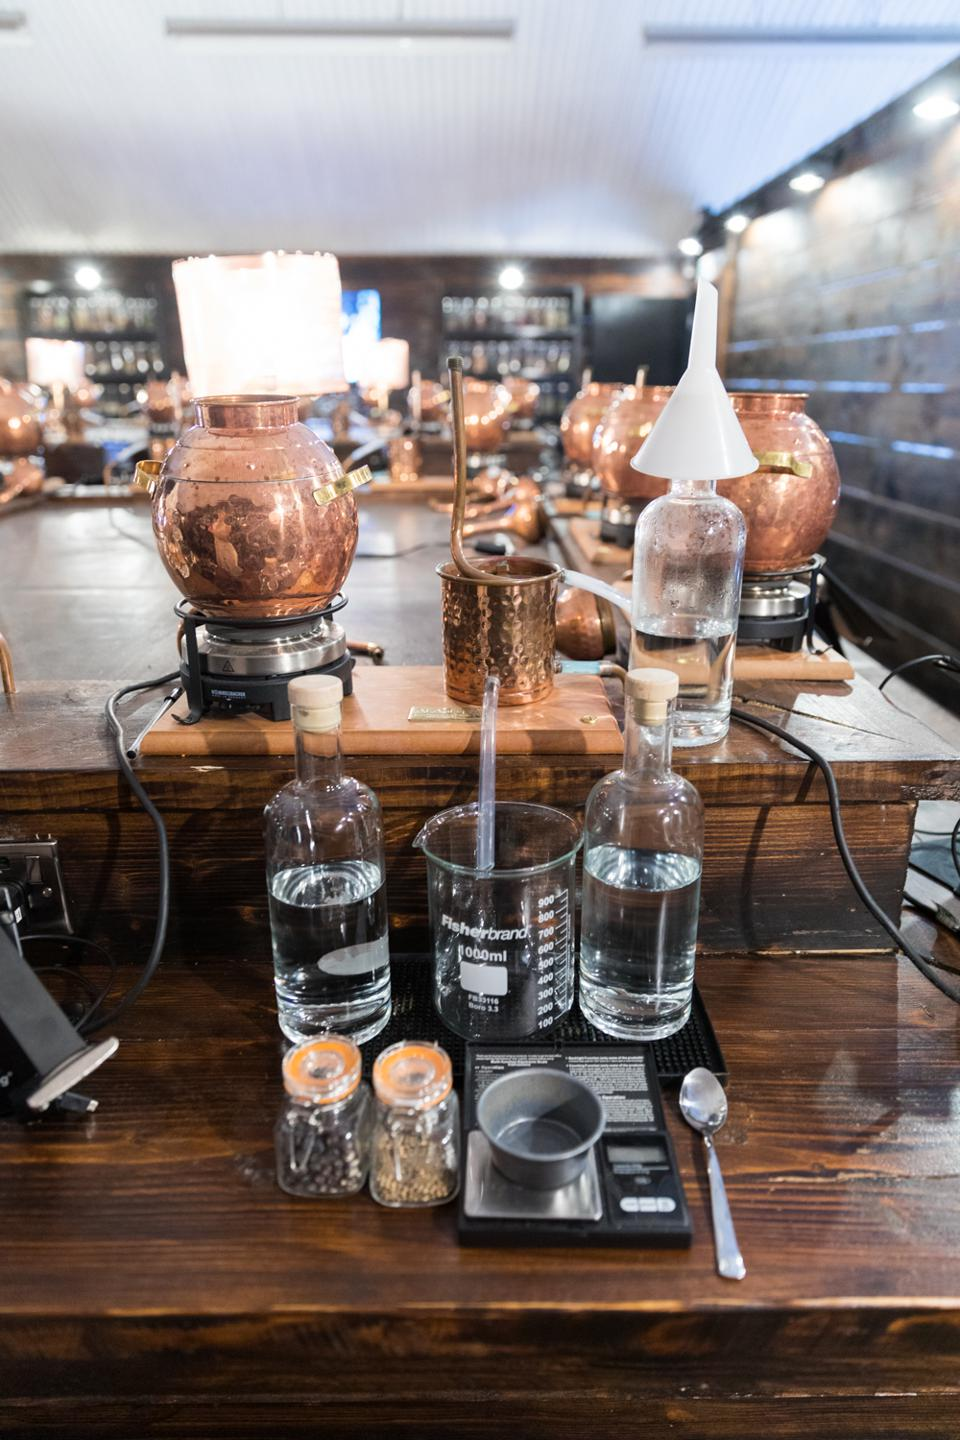 One of the stations at the Gin School